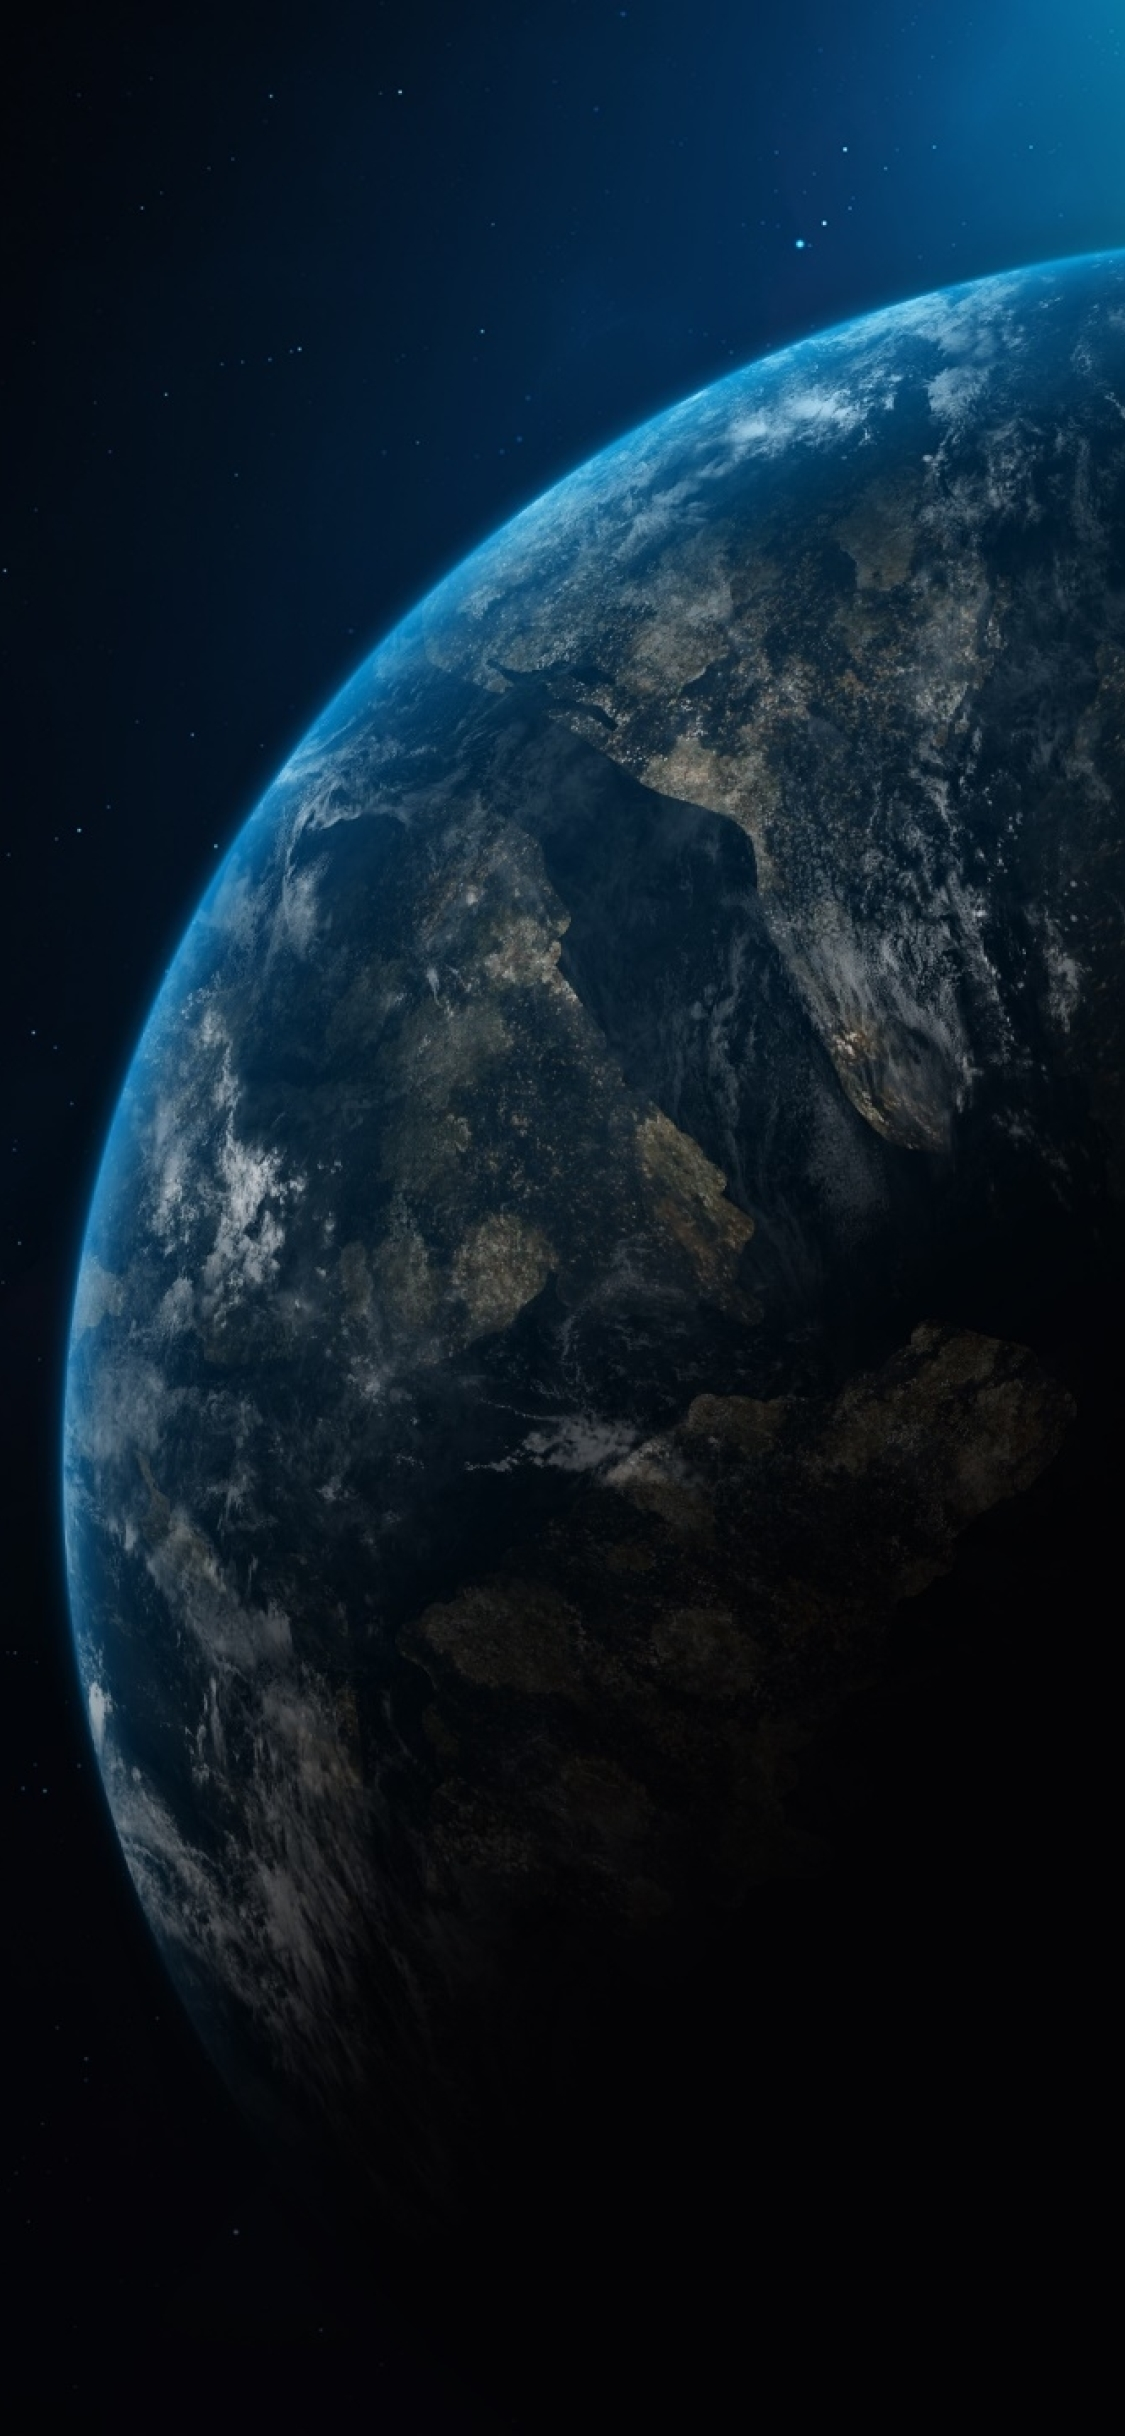 1125x2436 Planet Earth In Dark Universe Iphone Xs Iphone 10 Iphone X Wallpaper Hd Space 4k Wallpapers Images Photos And Background